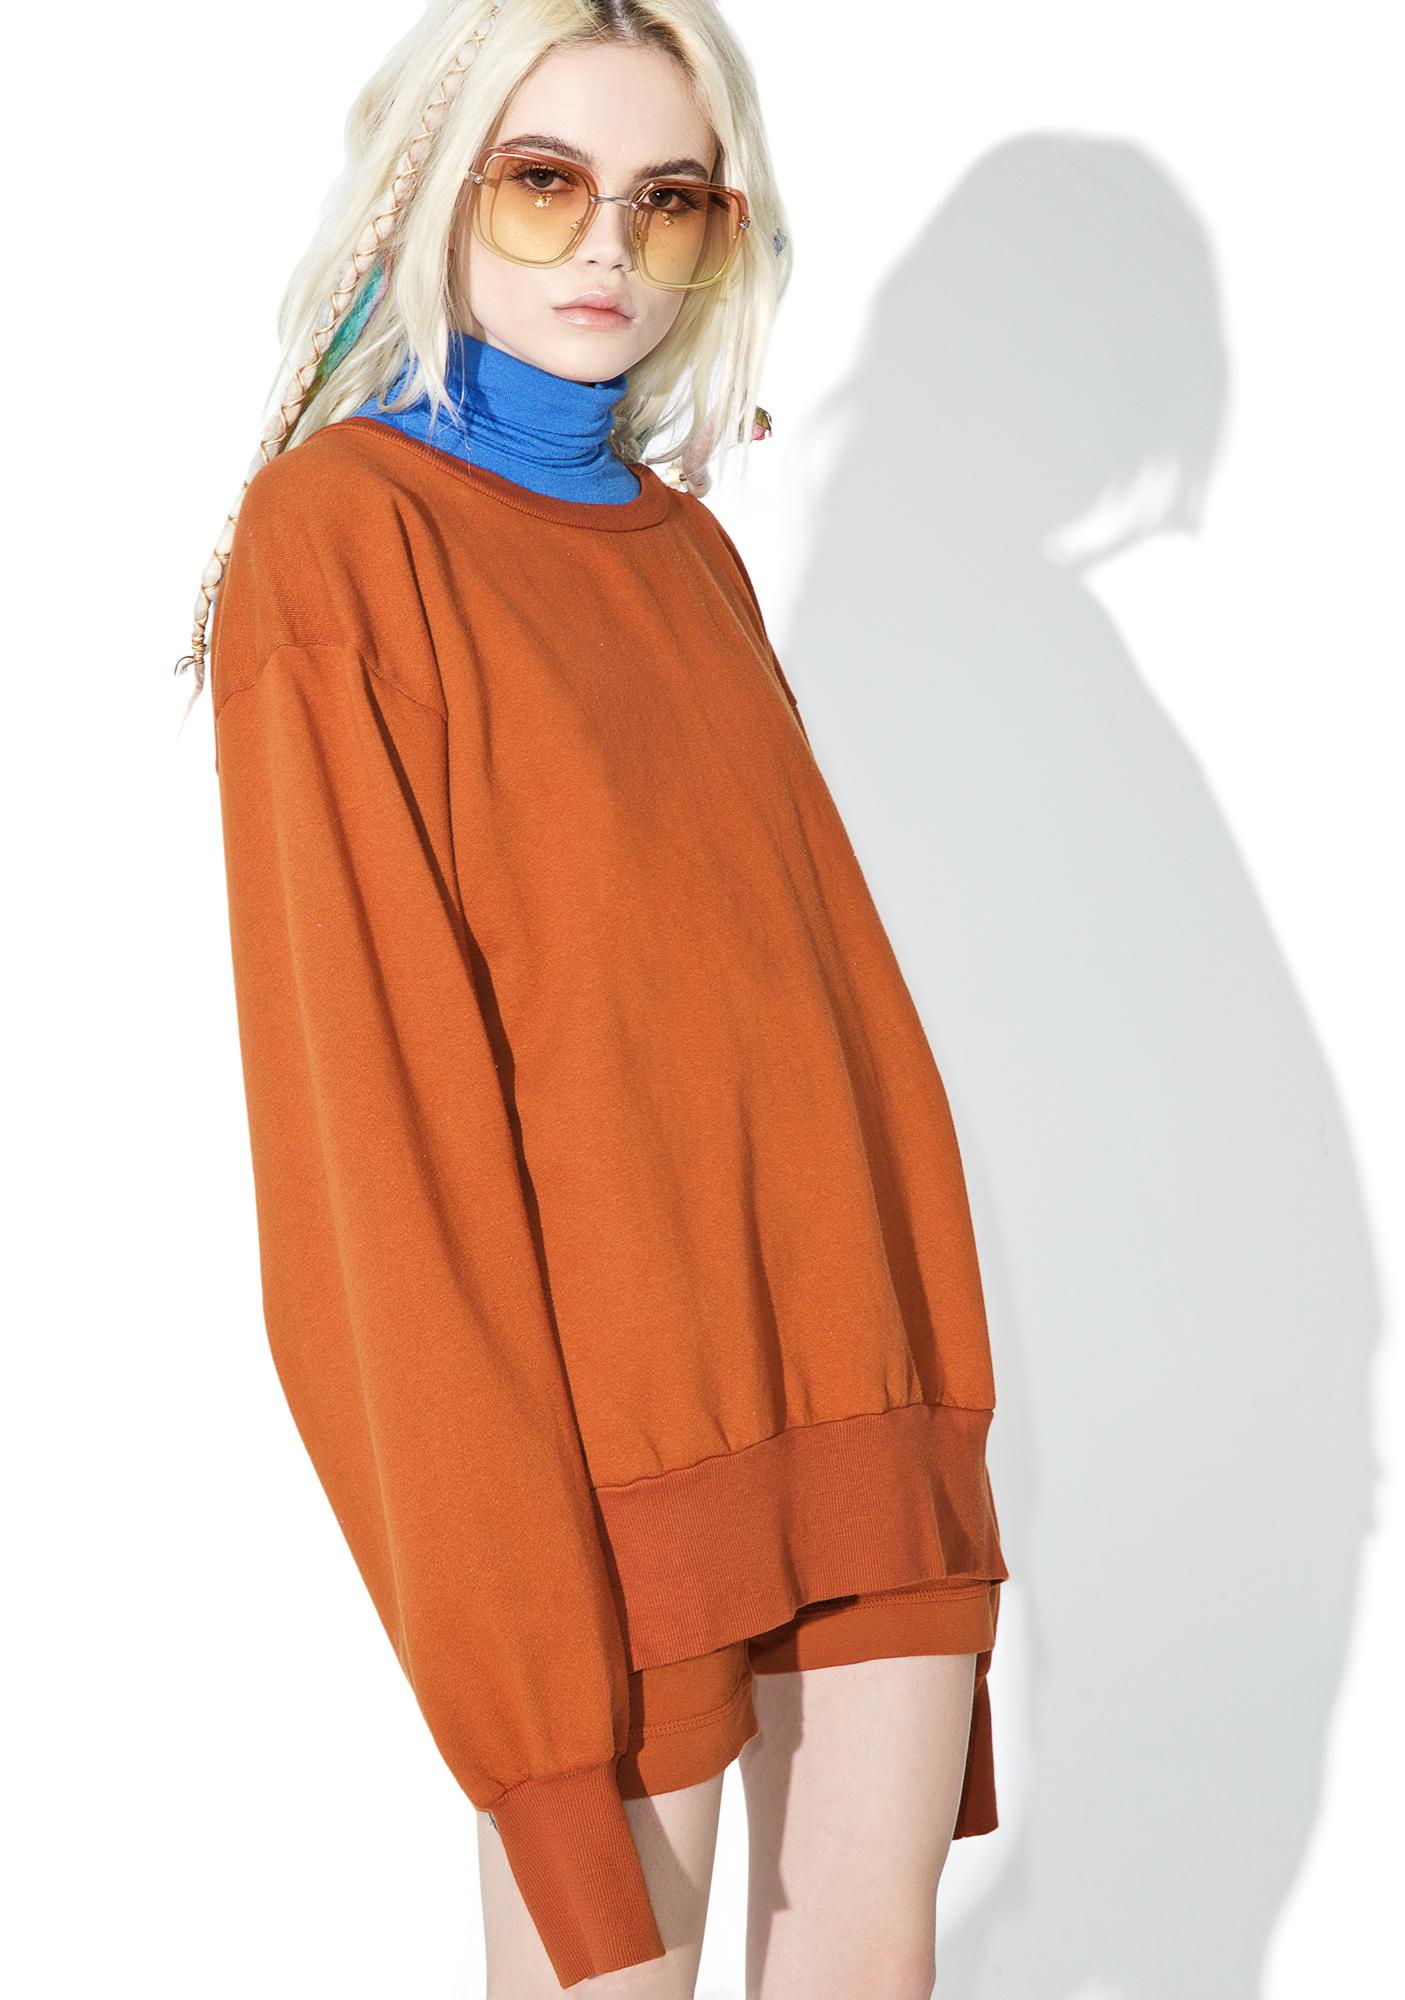 Daydream Nation Dreams Come True Pullover